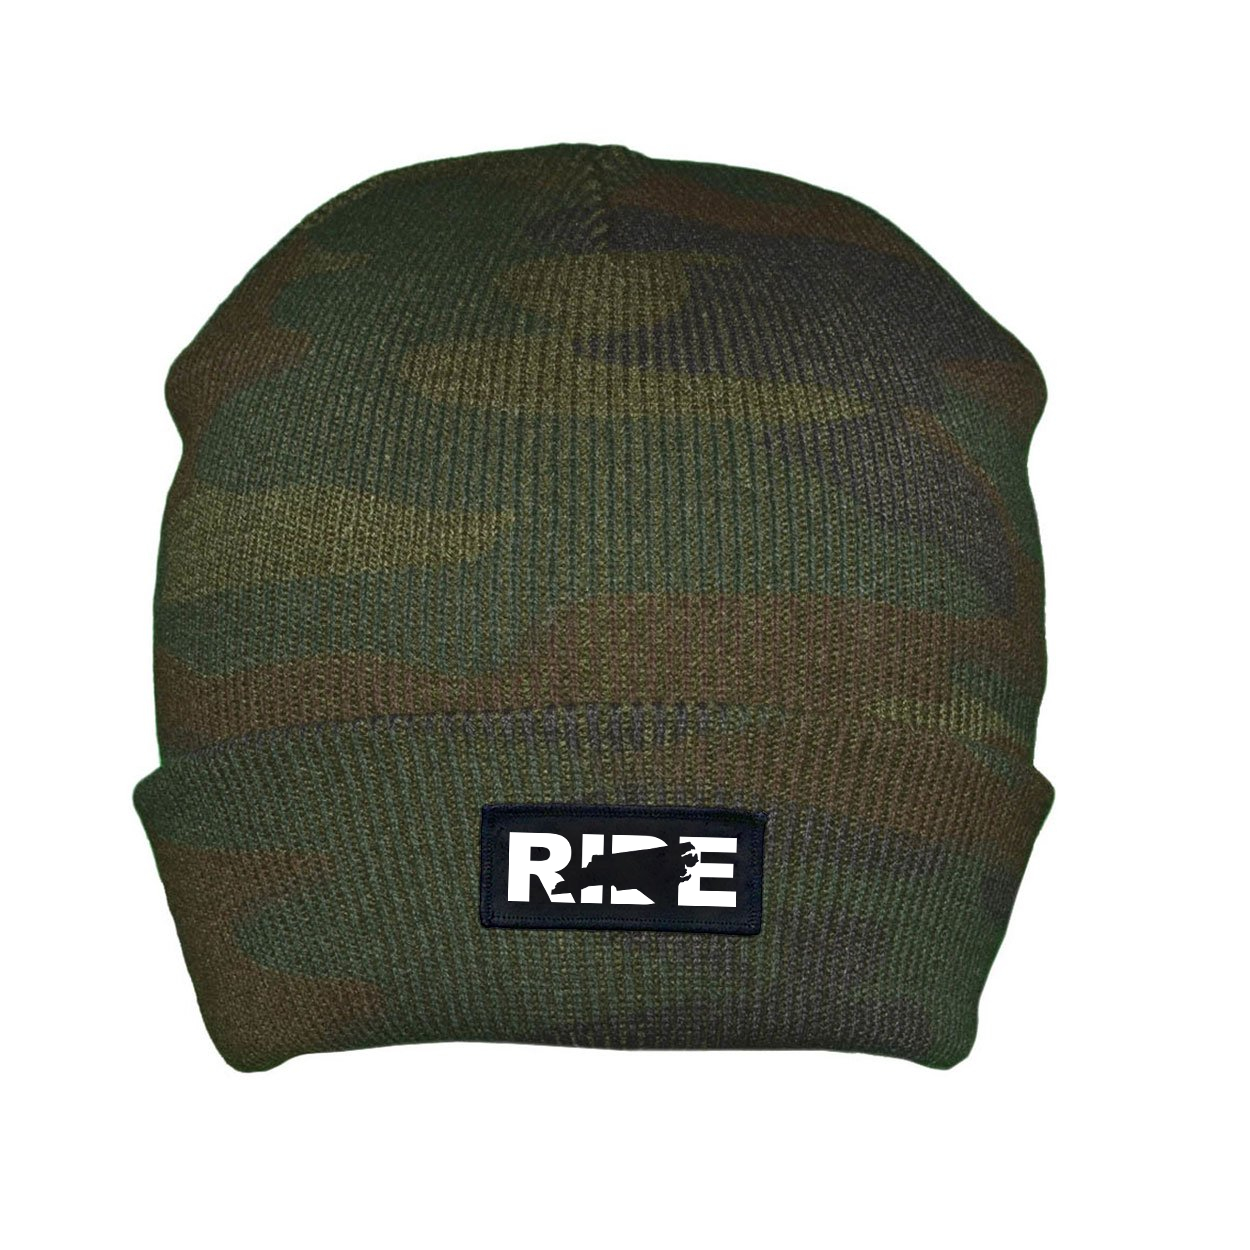 Ride North Carolina Night Out Woven Patch Roll Up Skully Beanie Camo (White Logo)